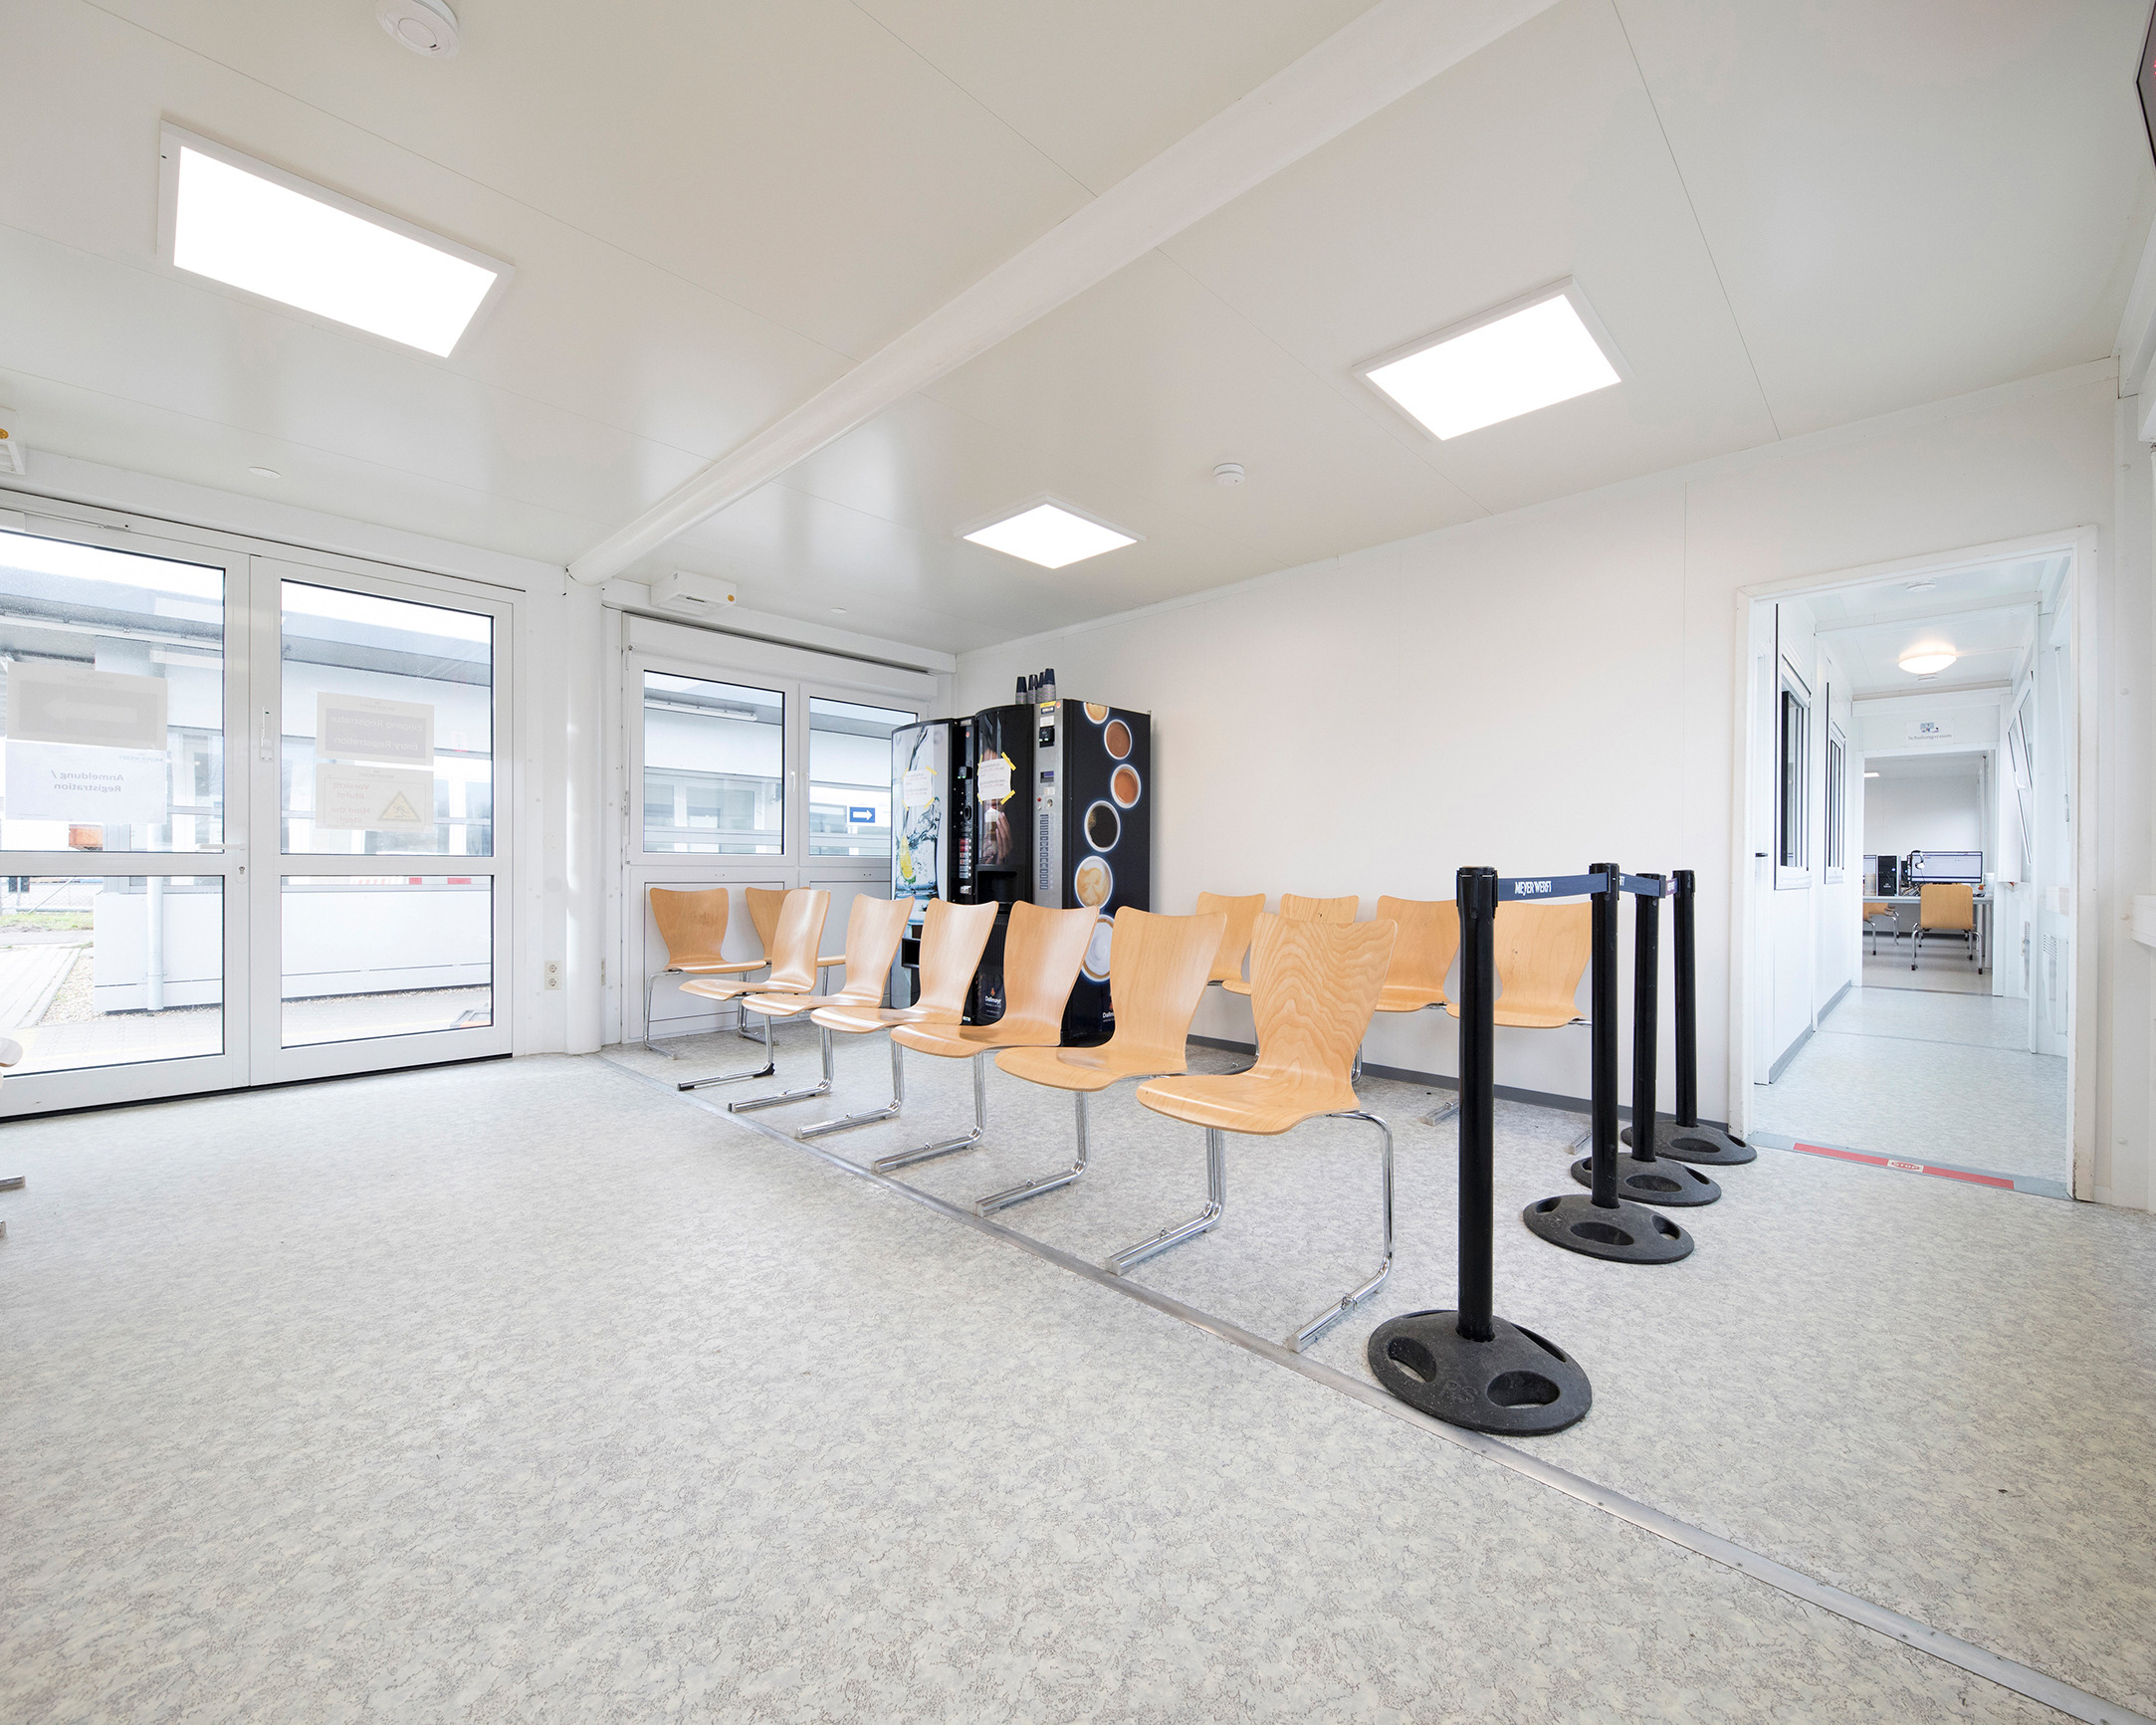 Double glass doors and a separate waiting area provide a friendly reception for the employees.